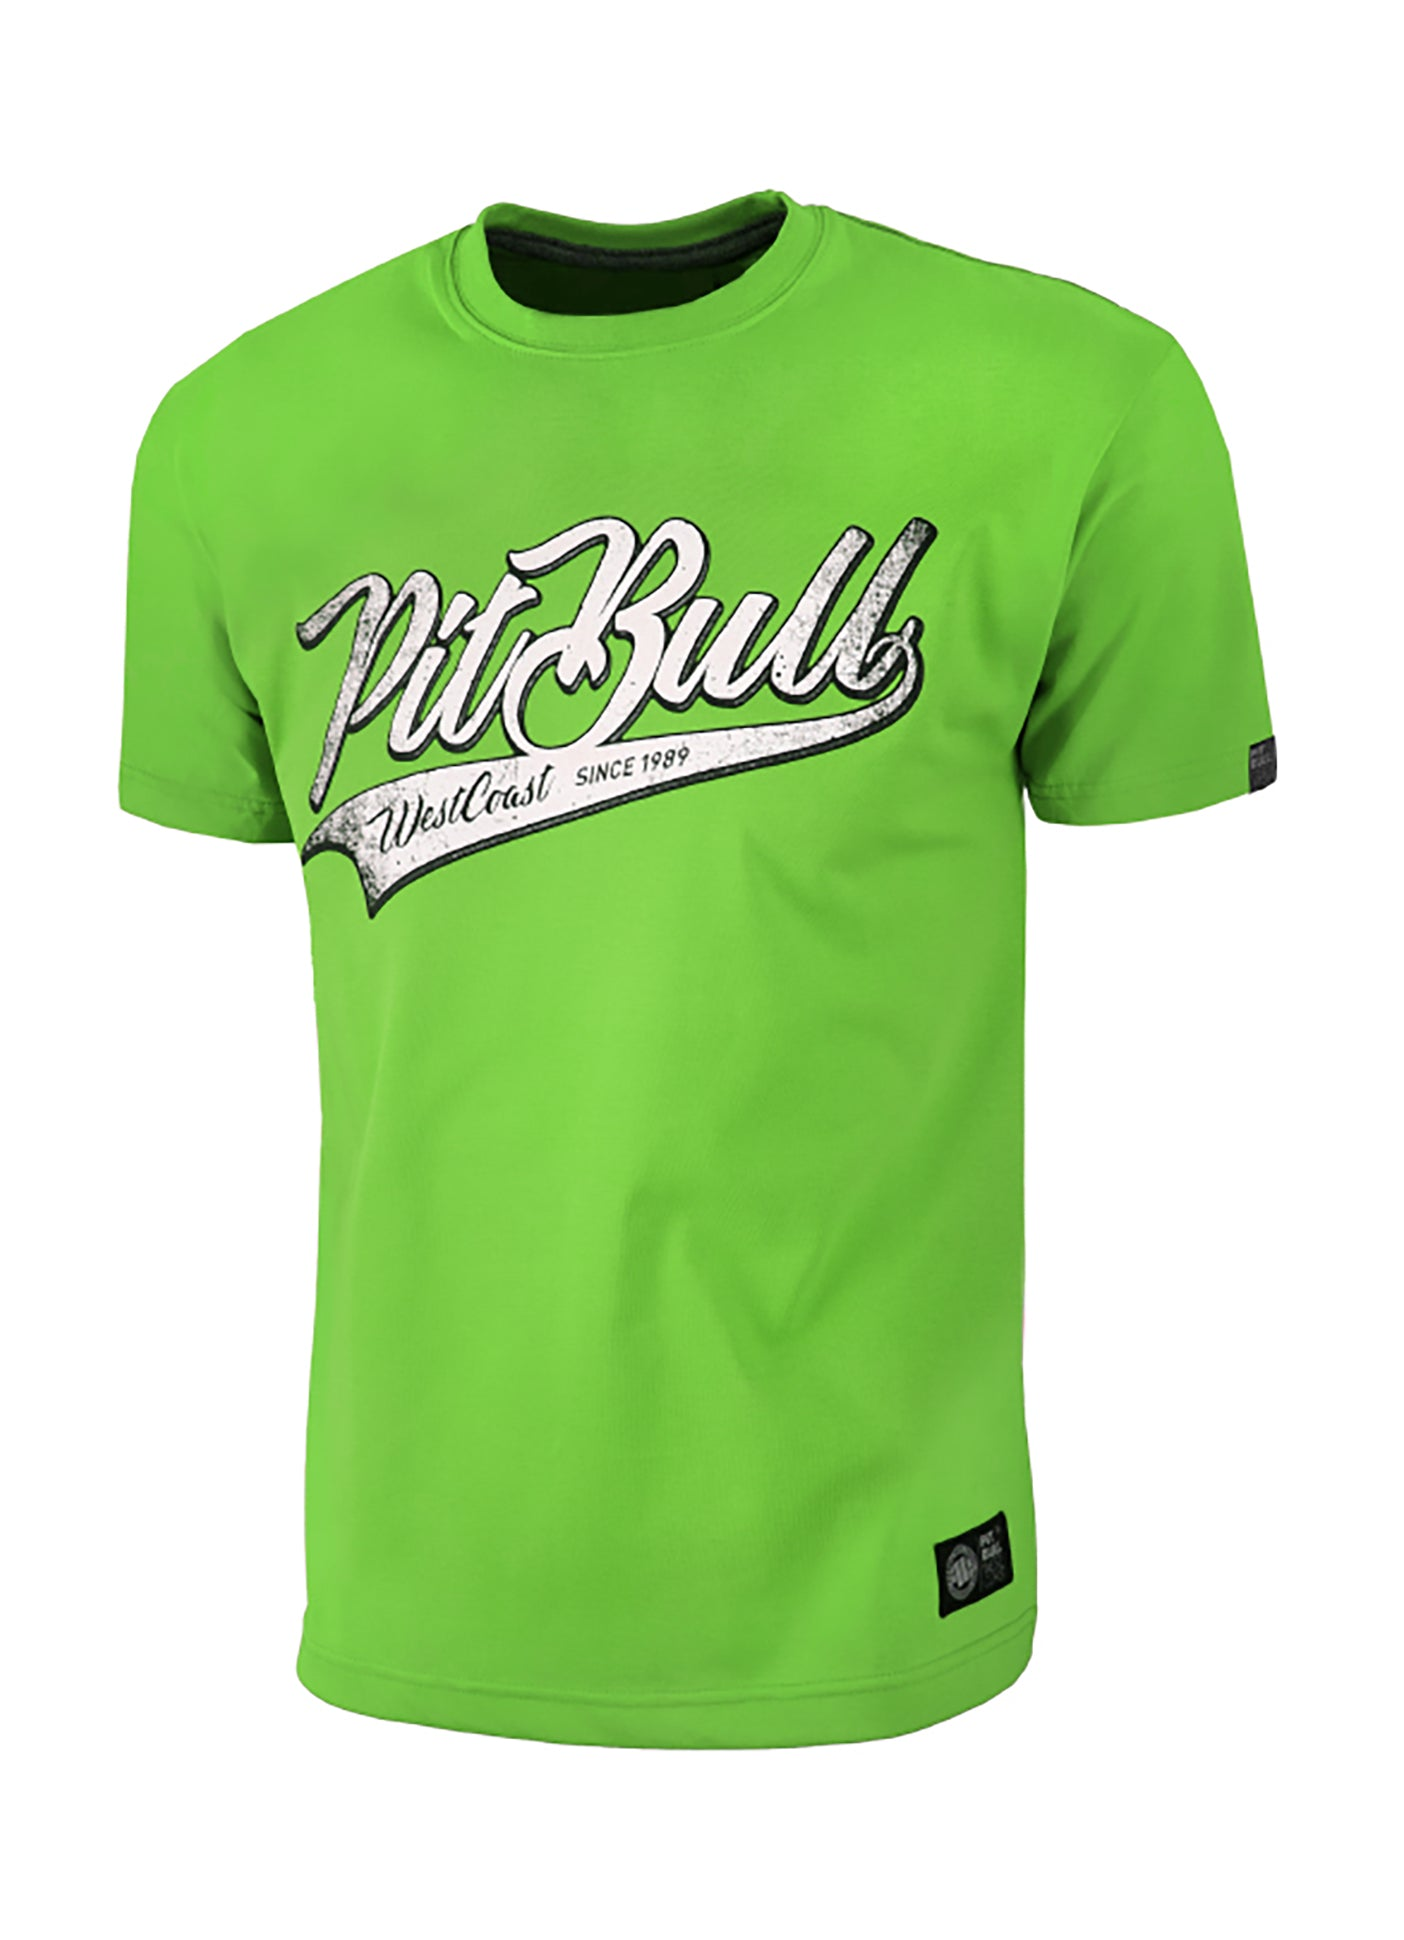 T-Shirt San Diego Dog Green - pitbullwestcoast